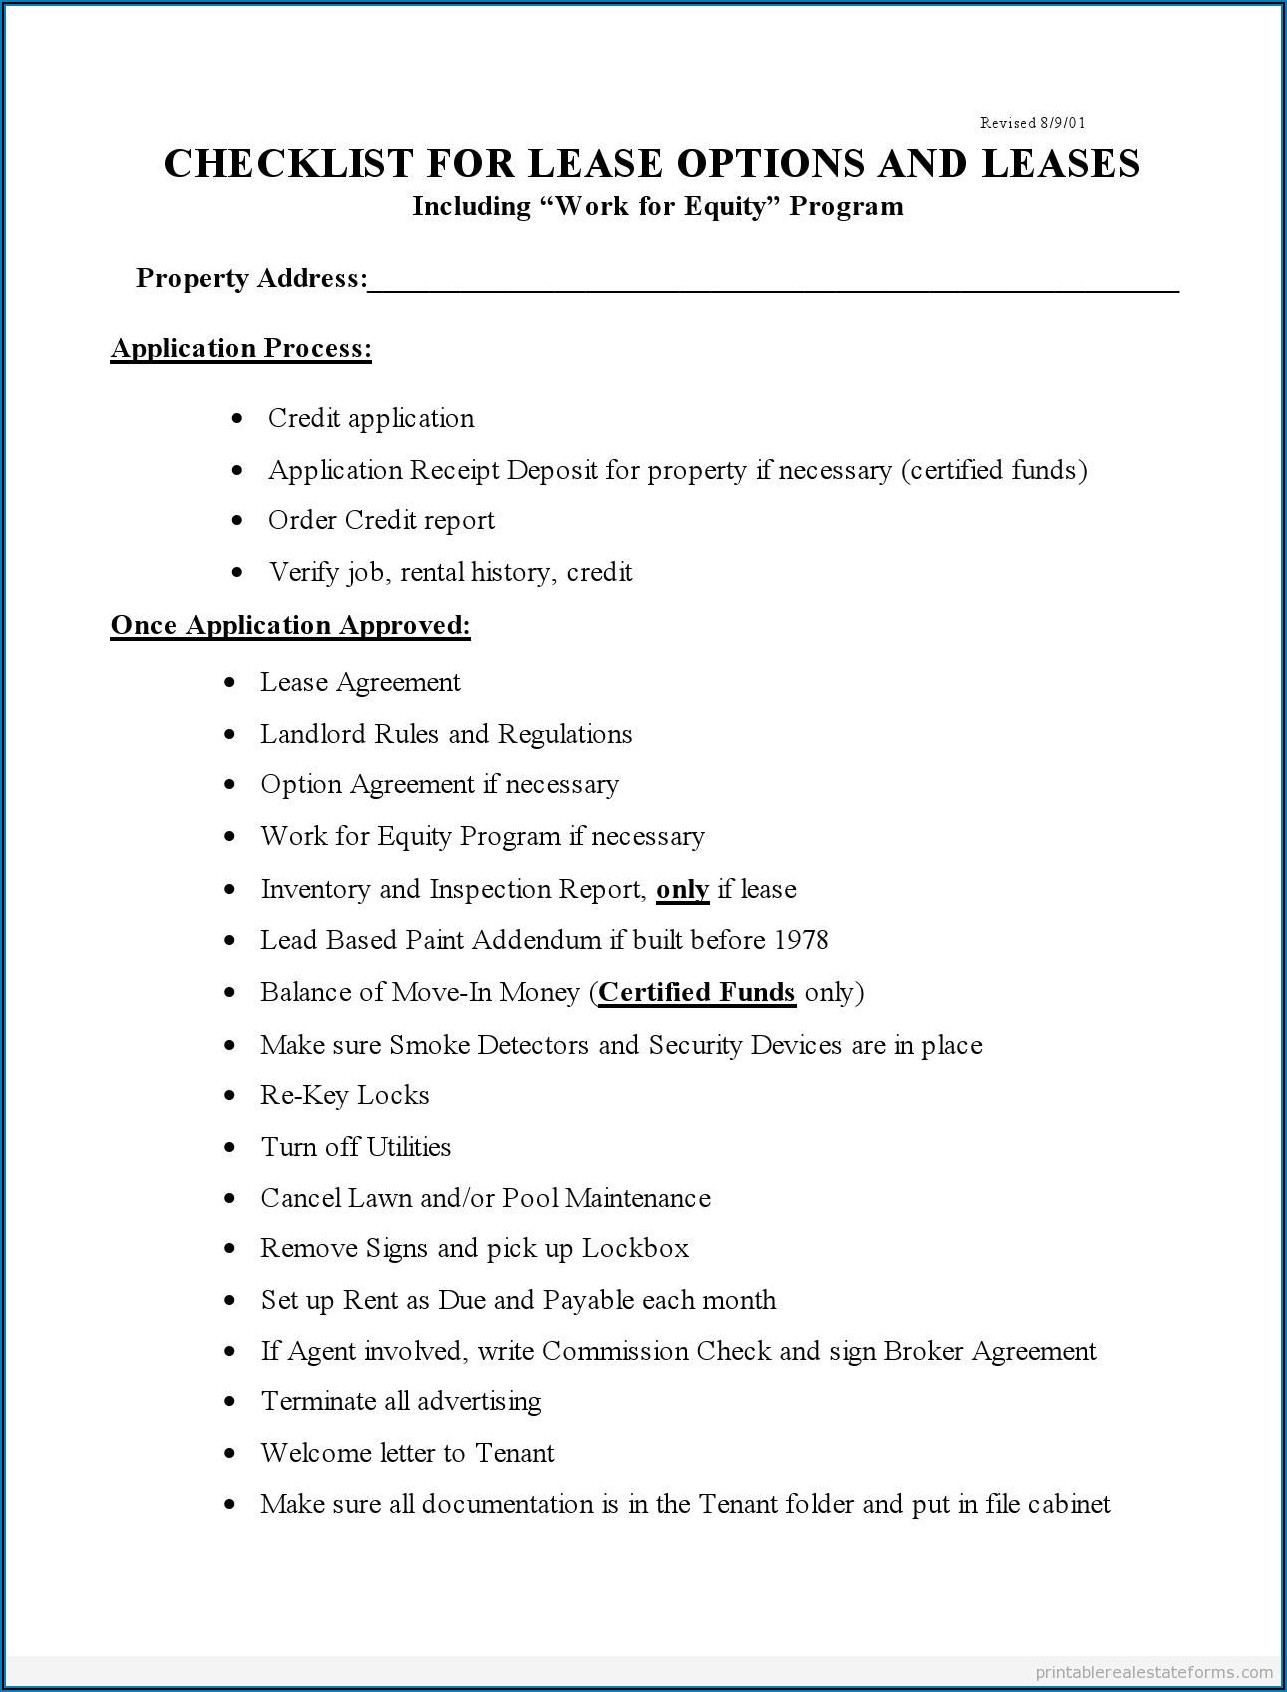 Real Estate Inspection Checklist Template